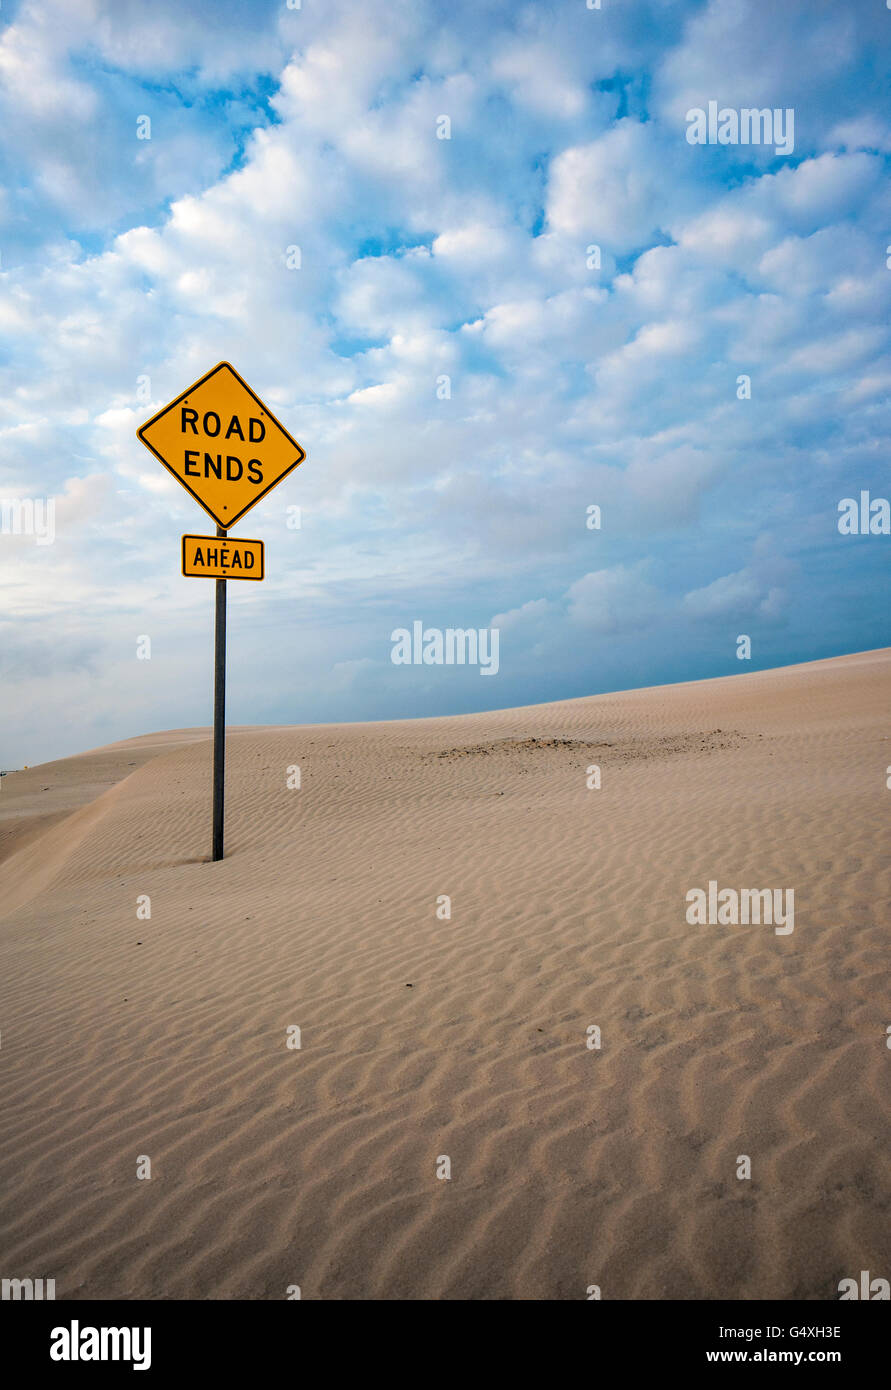 Road Ends sign in dunes on South Padre Island, Texas, USA - Stock Image